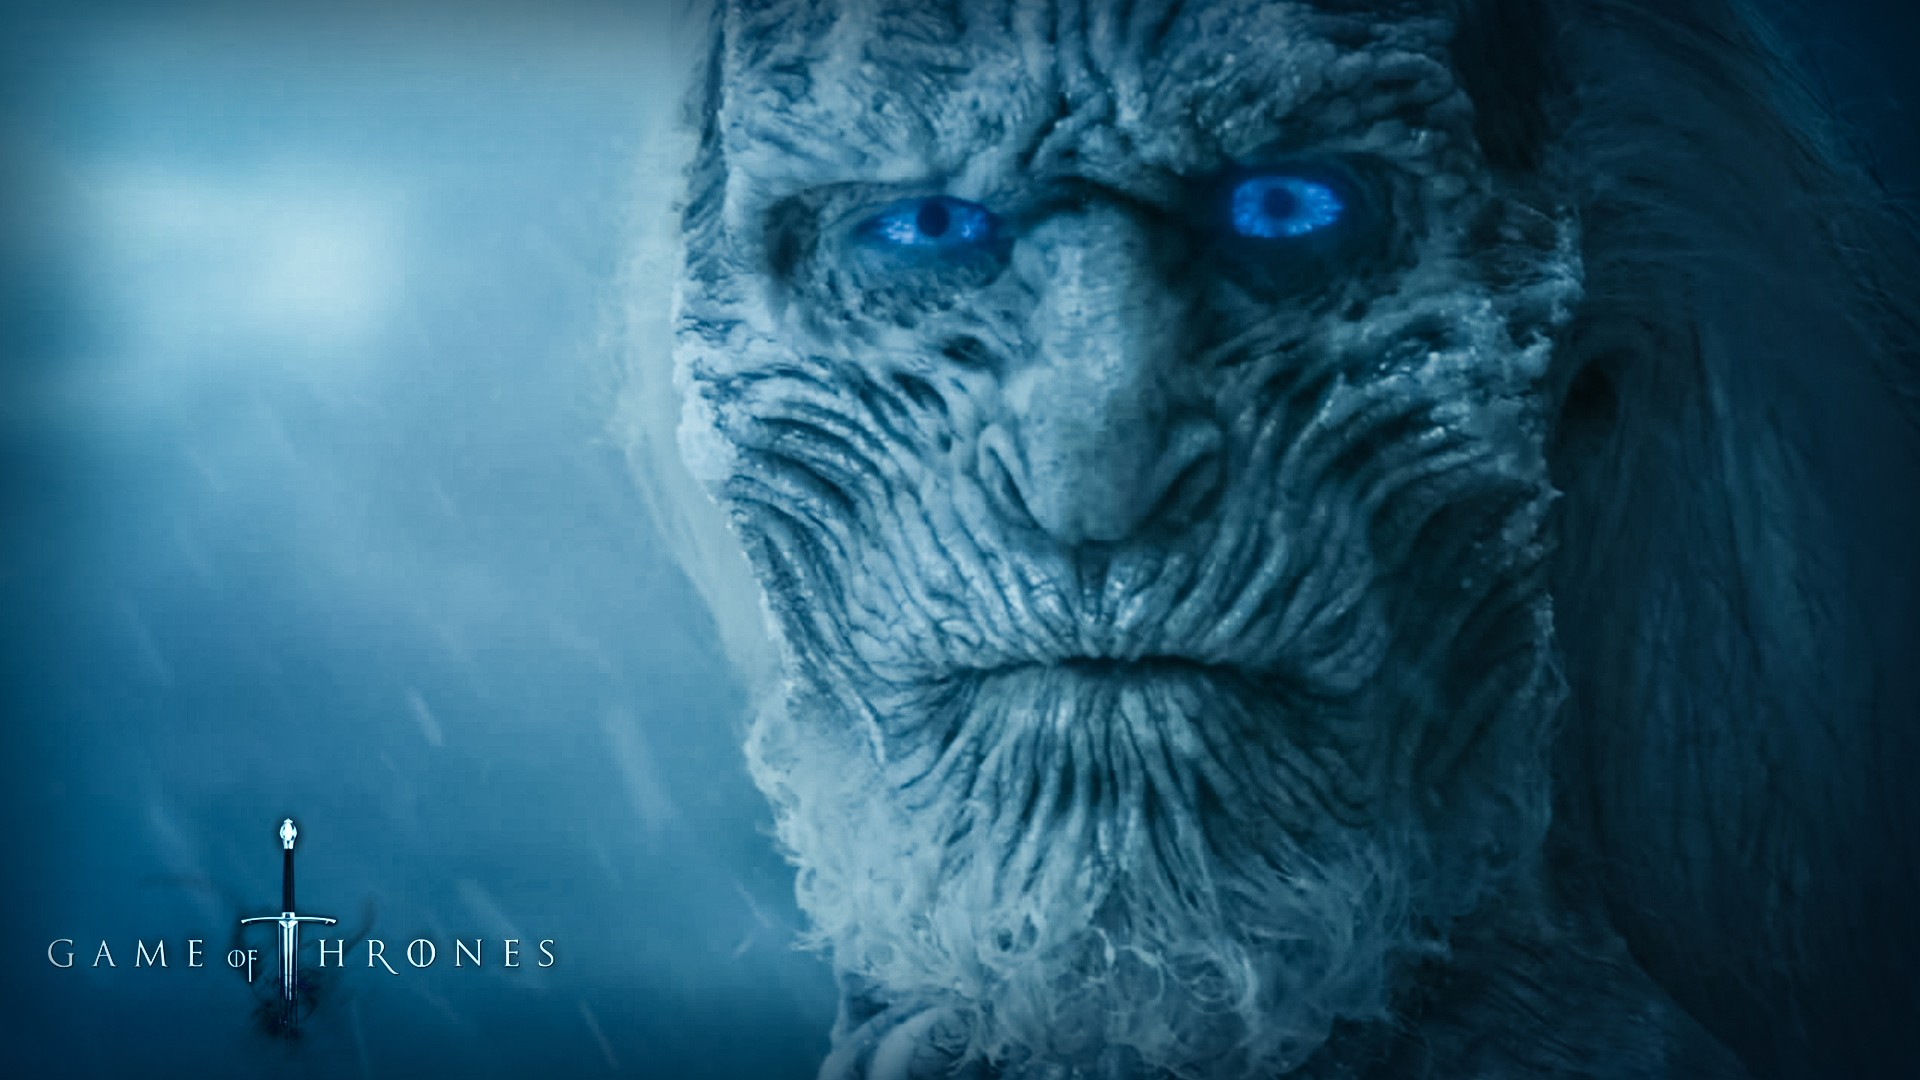 Game Of Thrones Wallpaper Download Free Awesome Hd Wallpapers Of